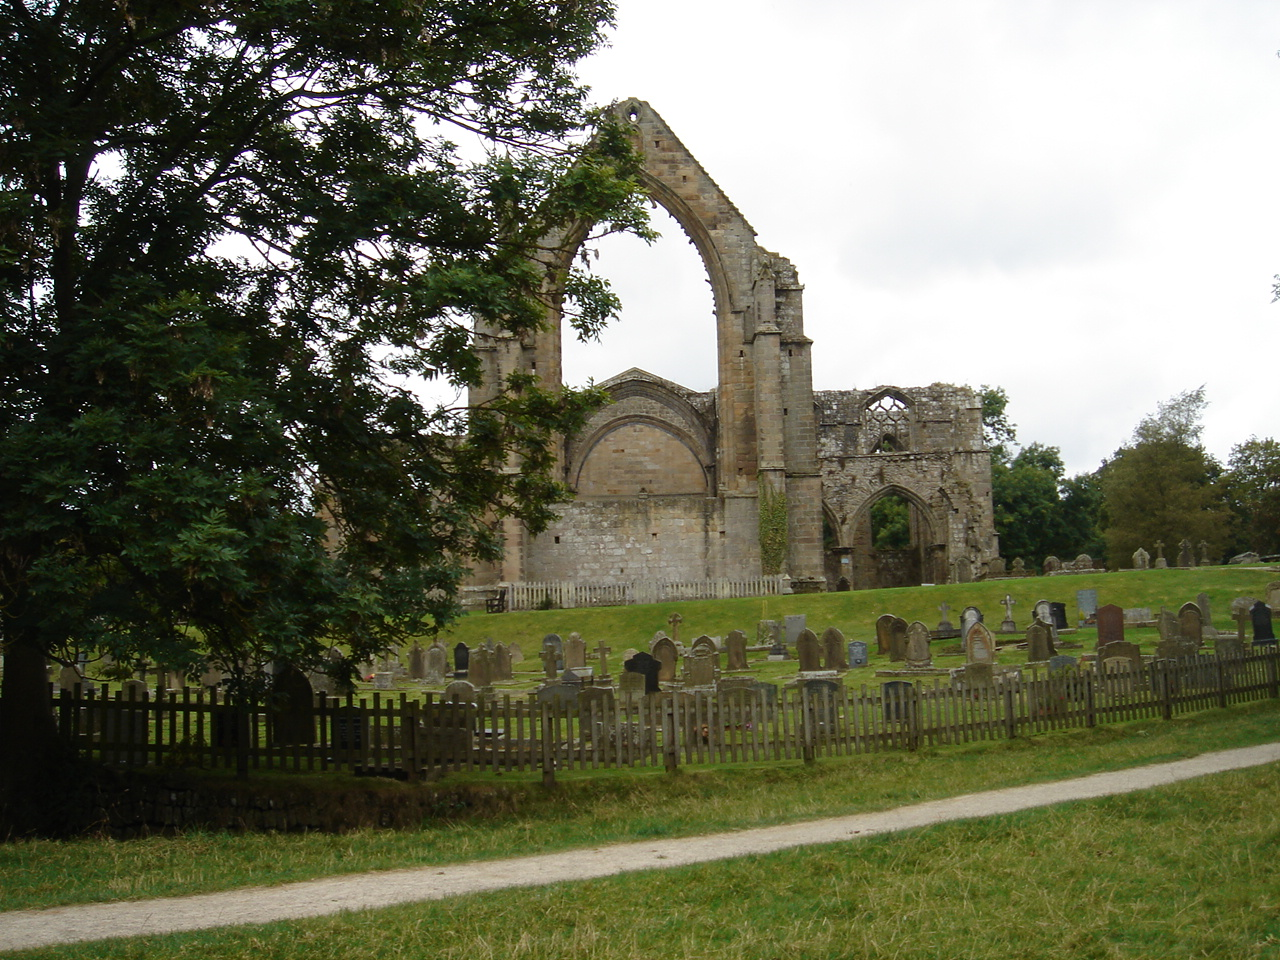 Bolton Abbey was destroyed by King Henry VIII.  The graveyard is still active, as is a rebuilt section of the church behind this part.